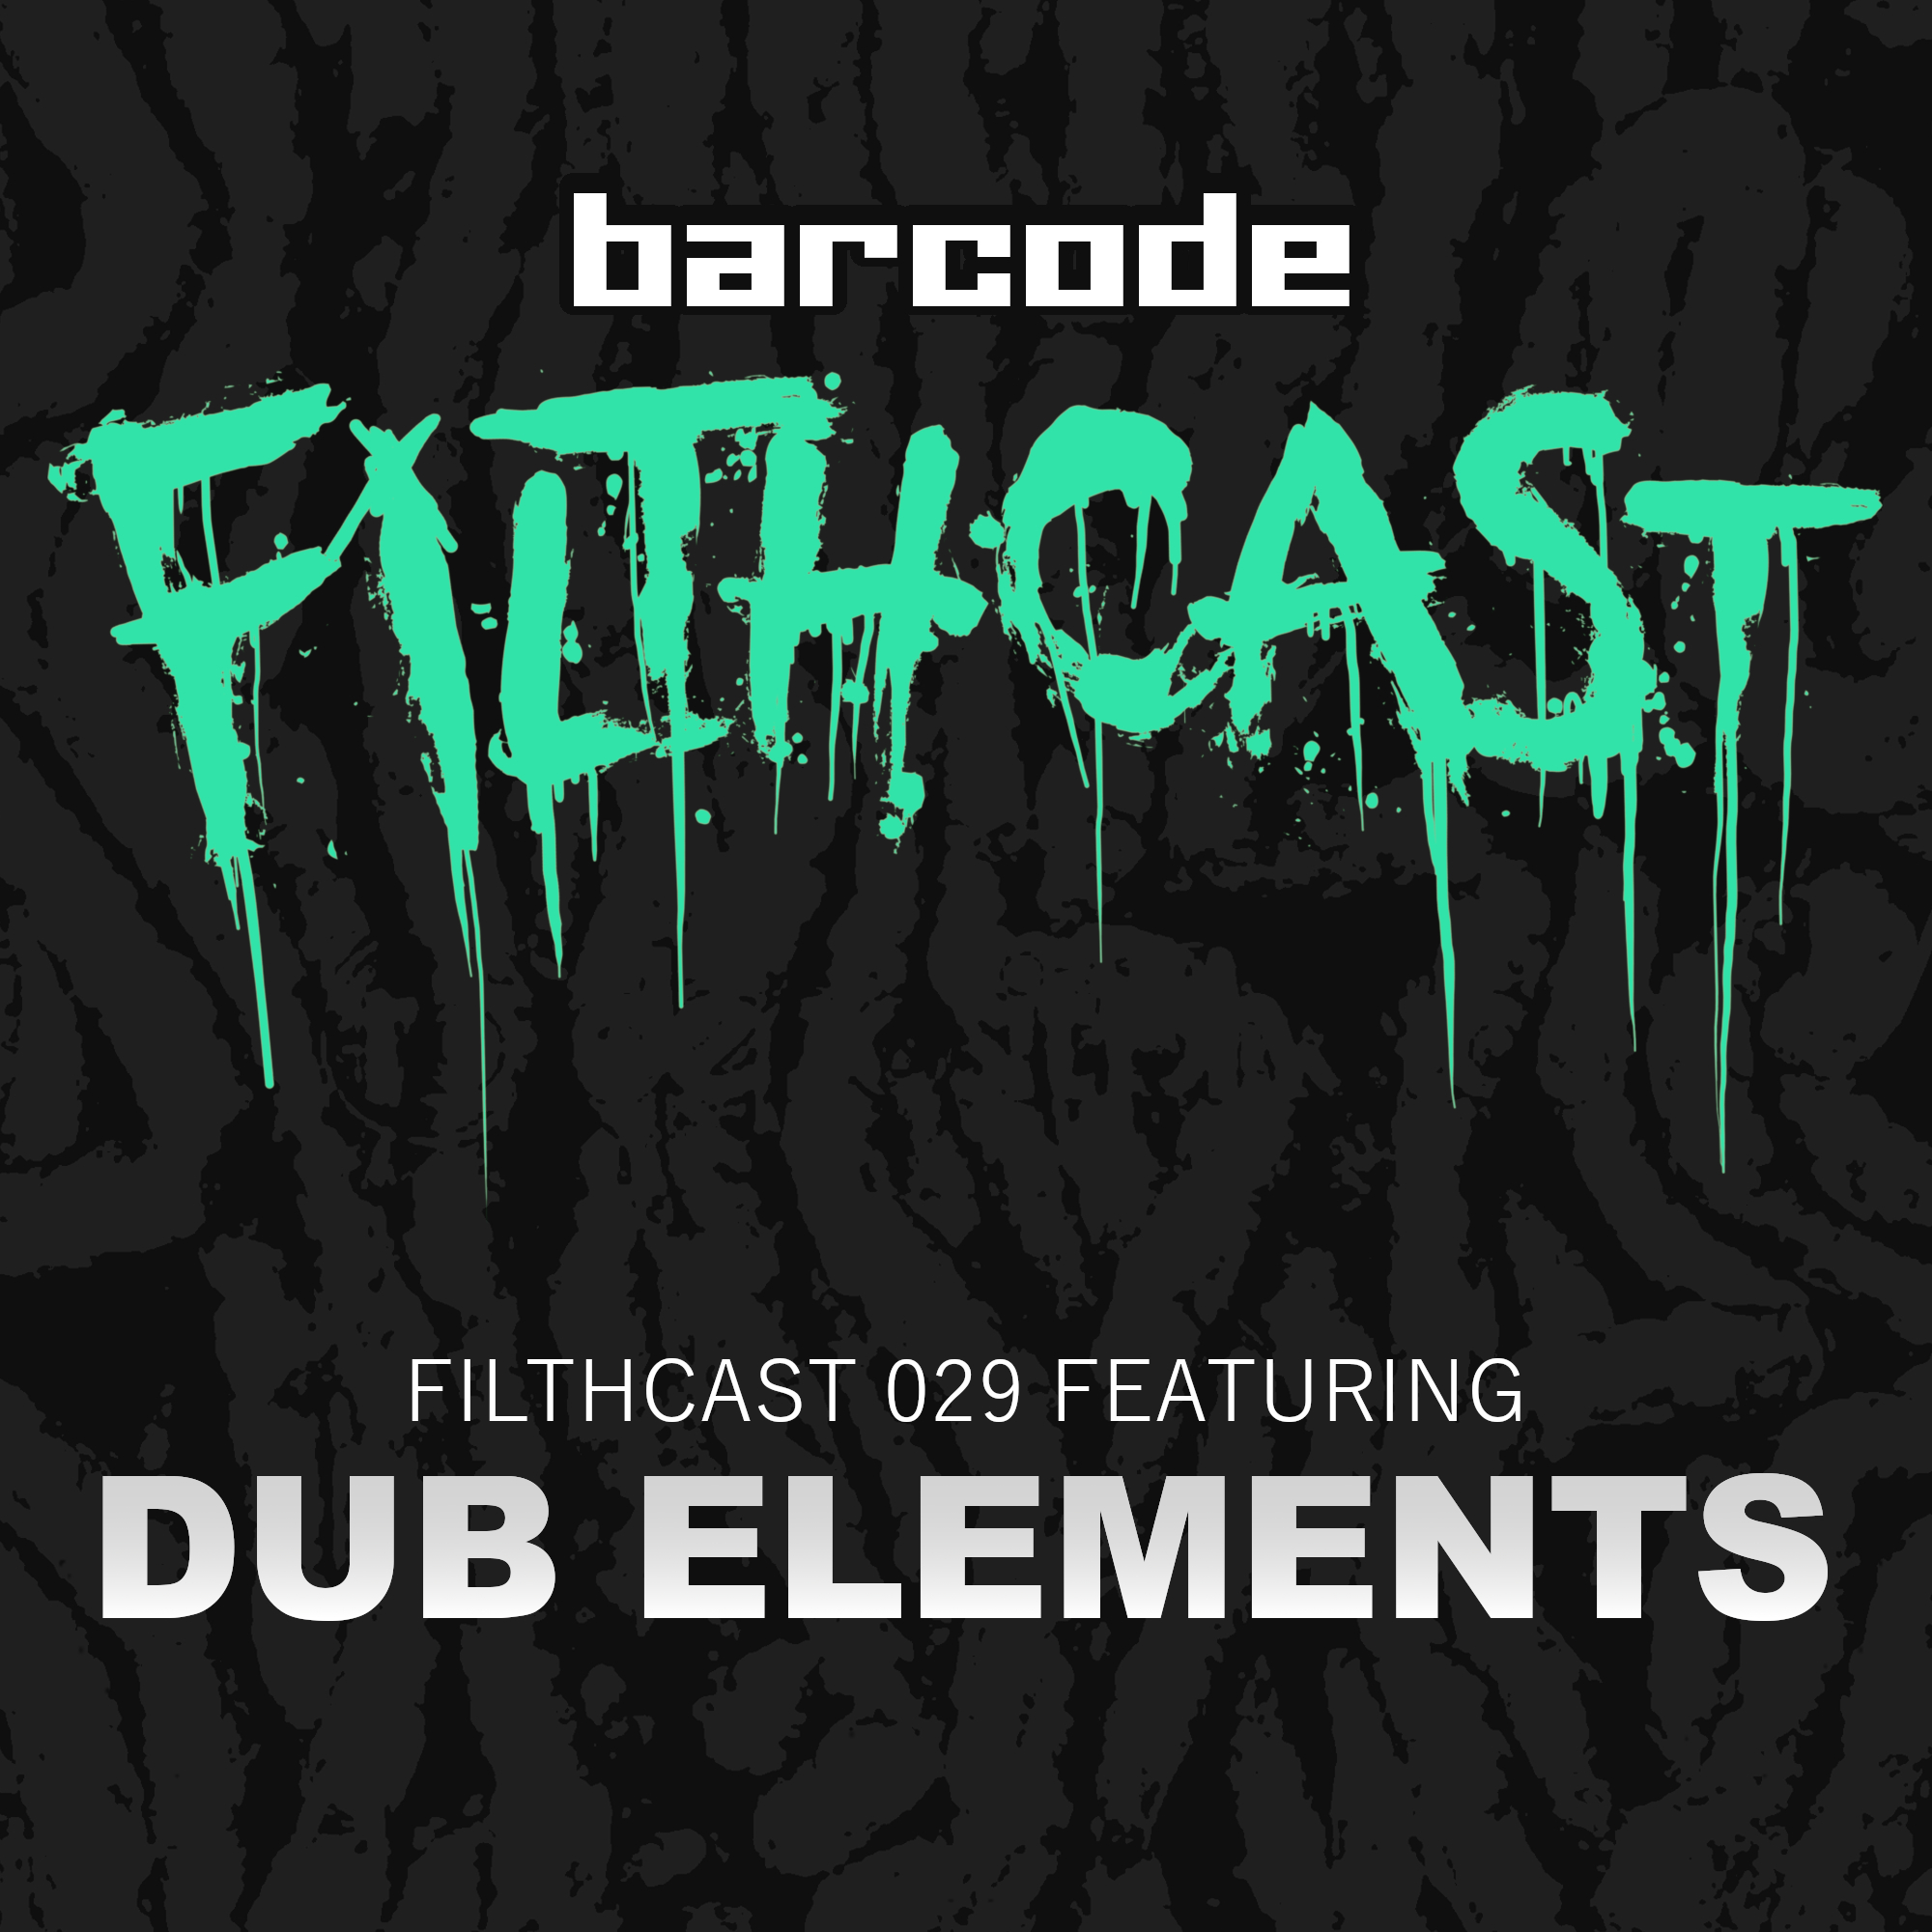 Emerging in 2007, Spain's Dub Elements have already established themselves as one of the most versatile production duos around, blurring the boundaries between drum and bass and hardcore and pushing the sound in their own unique direction.